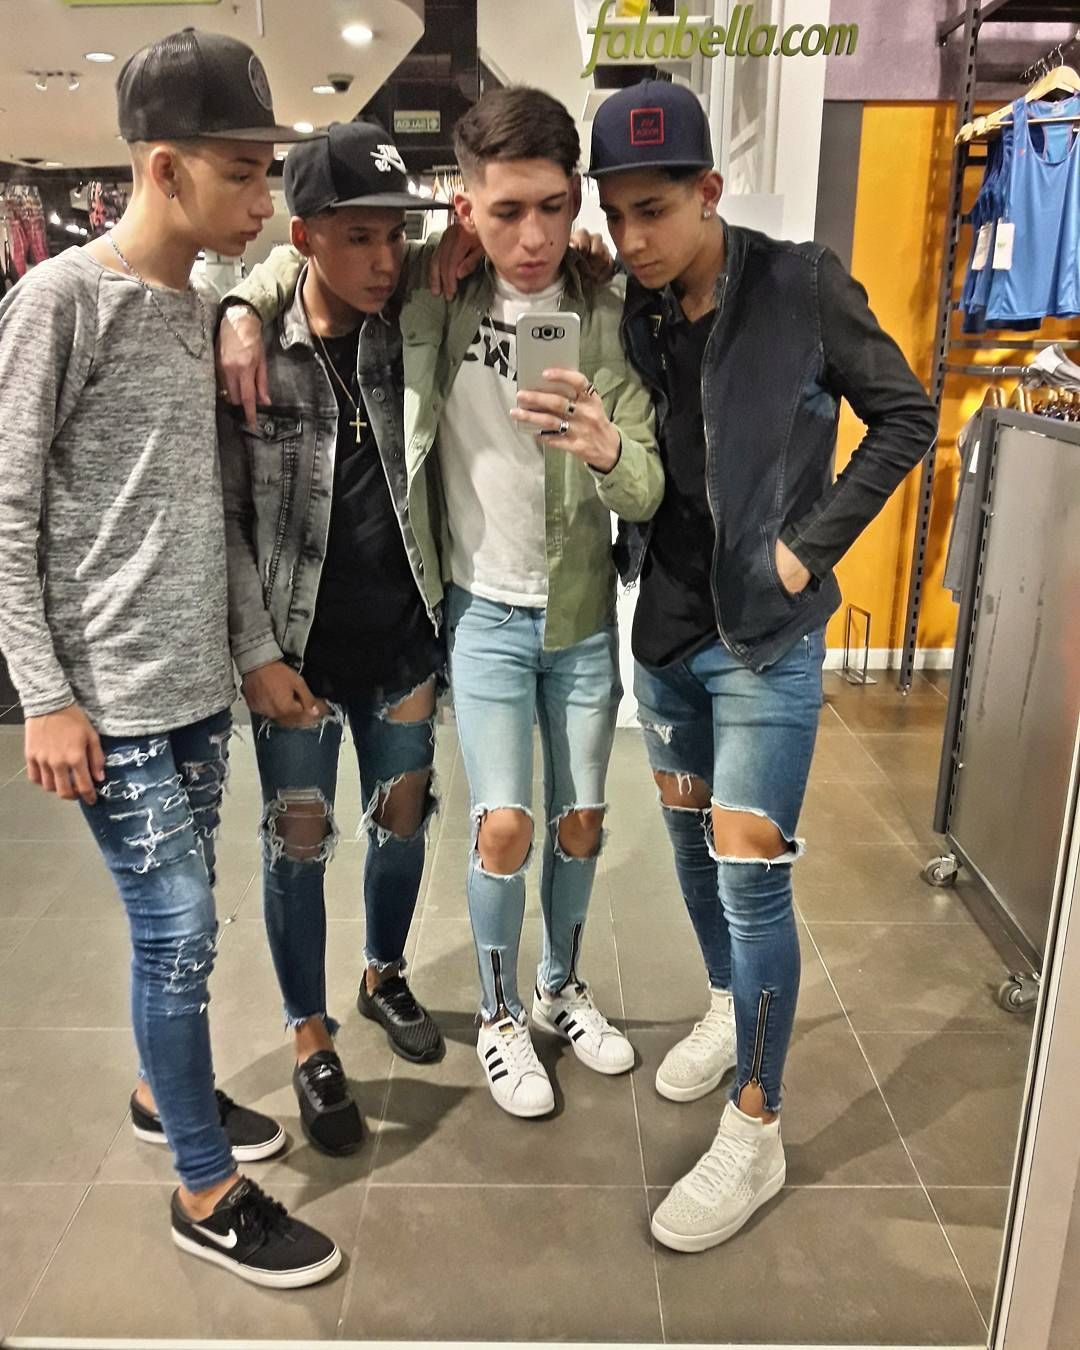 Pin On I Luv Boyz In Tight Jeans